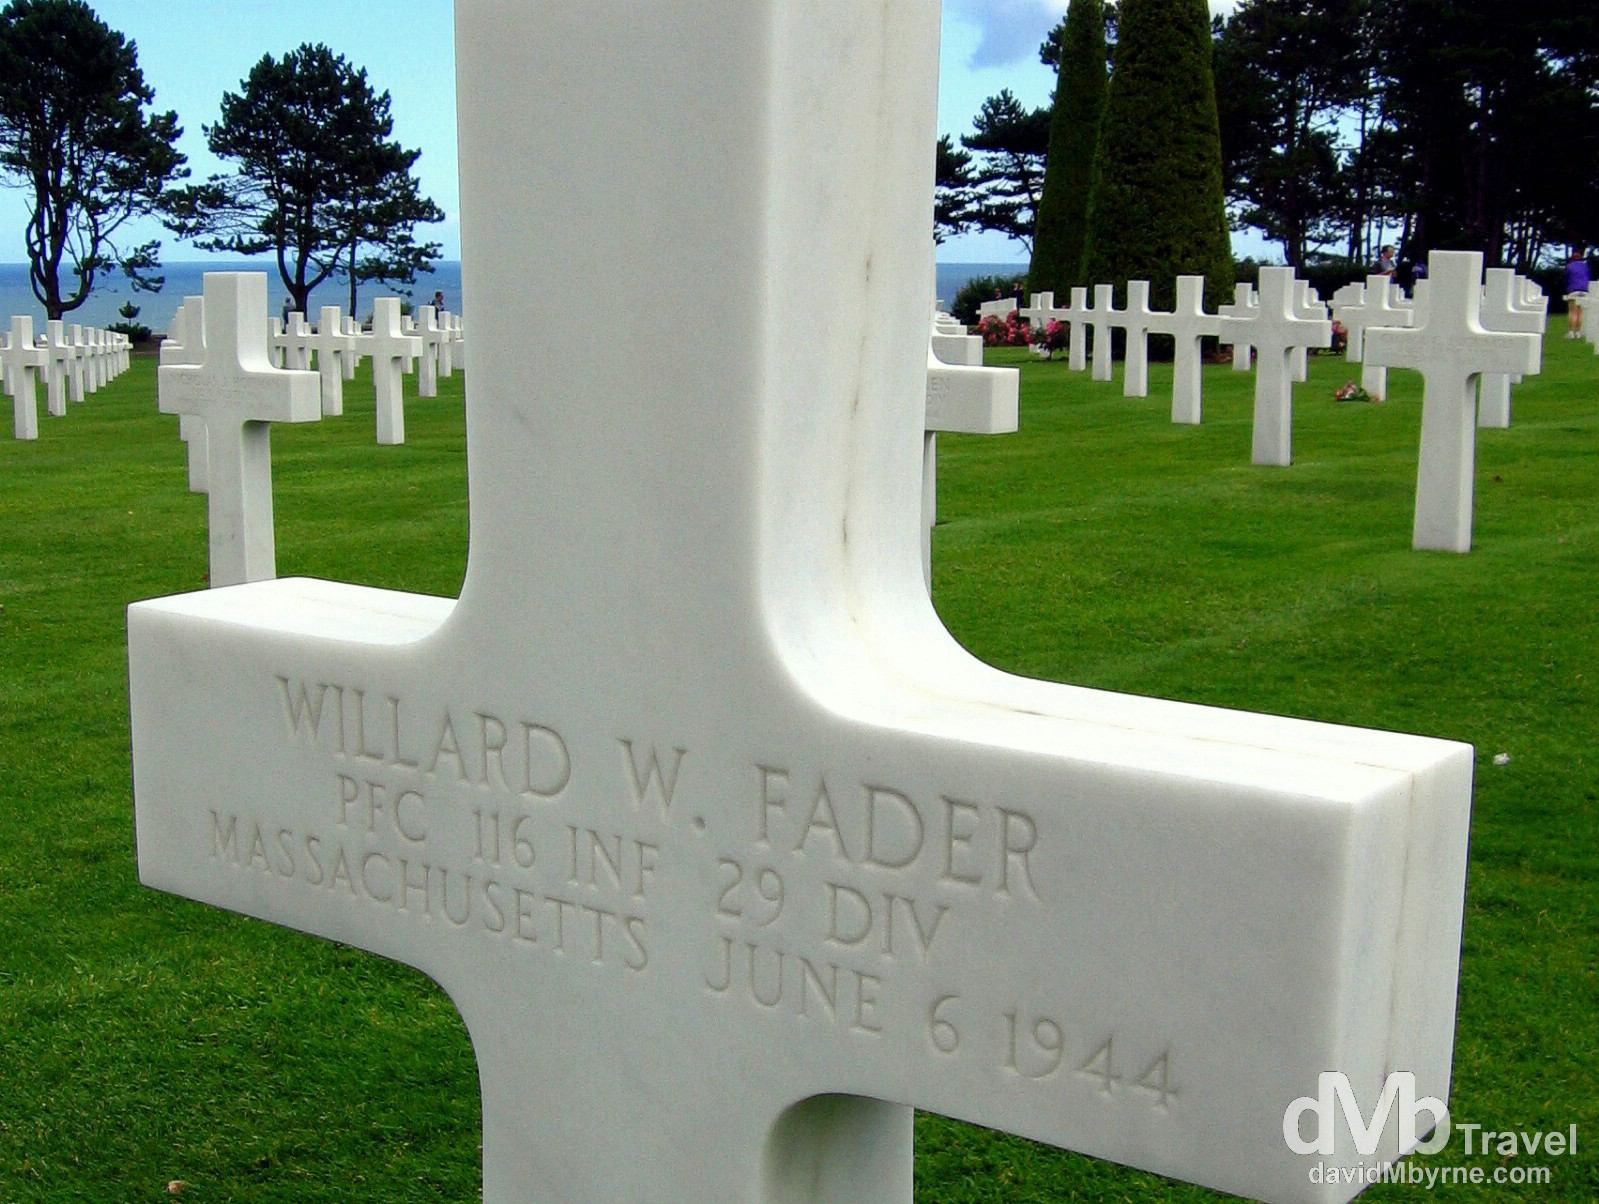 D-Day. June 6th 1944. The American War Cemetery at Colleville sur mer, Normandy, France. August 16th 2007.